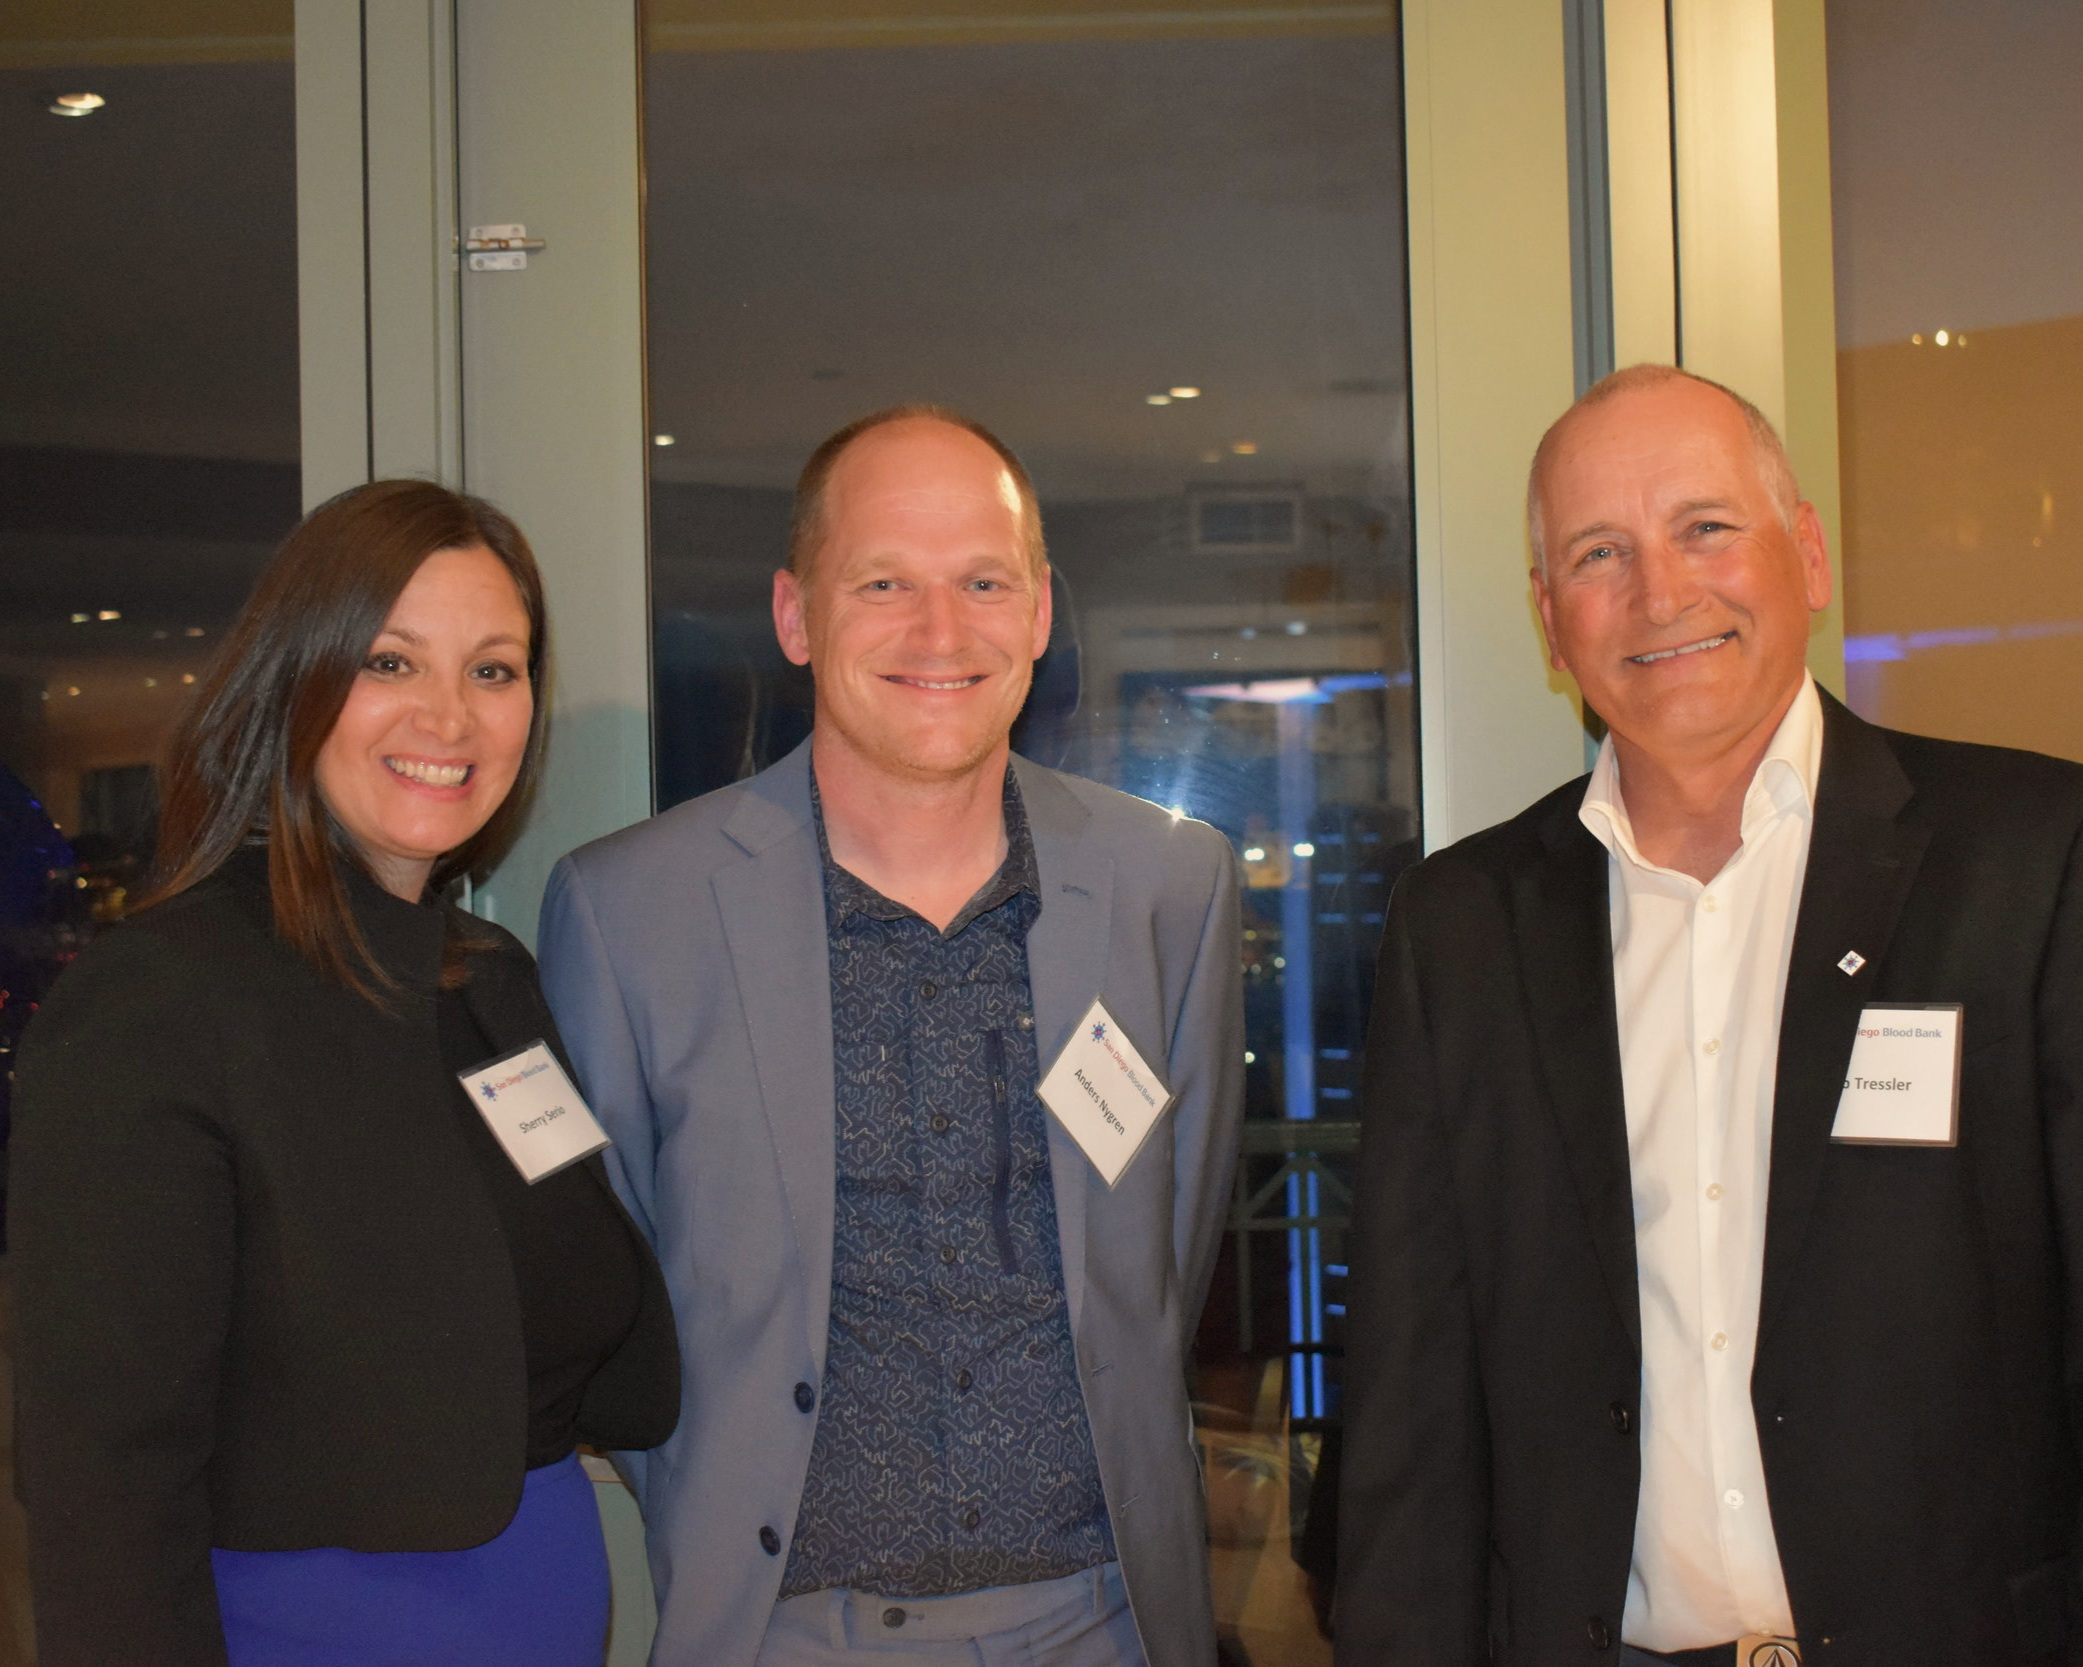 Sherry Serio, SDBB Vice President of Development, Anders Nygren, Vice President of Research and Development at Stratify Genomics, and SDBB's Rob Tressler, Vice President of Laboratories, Cell Therapy